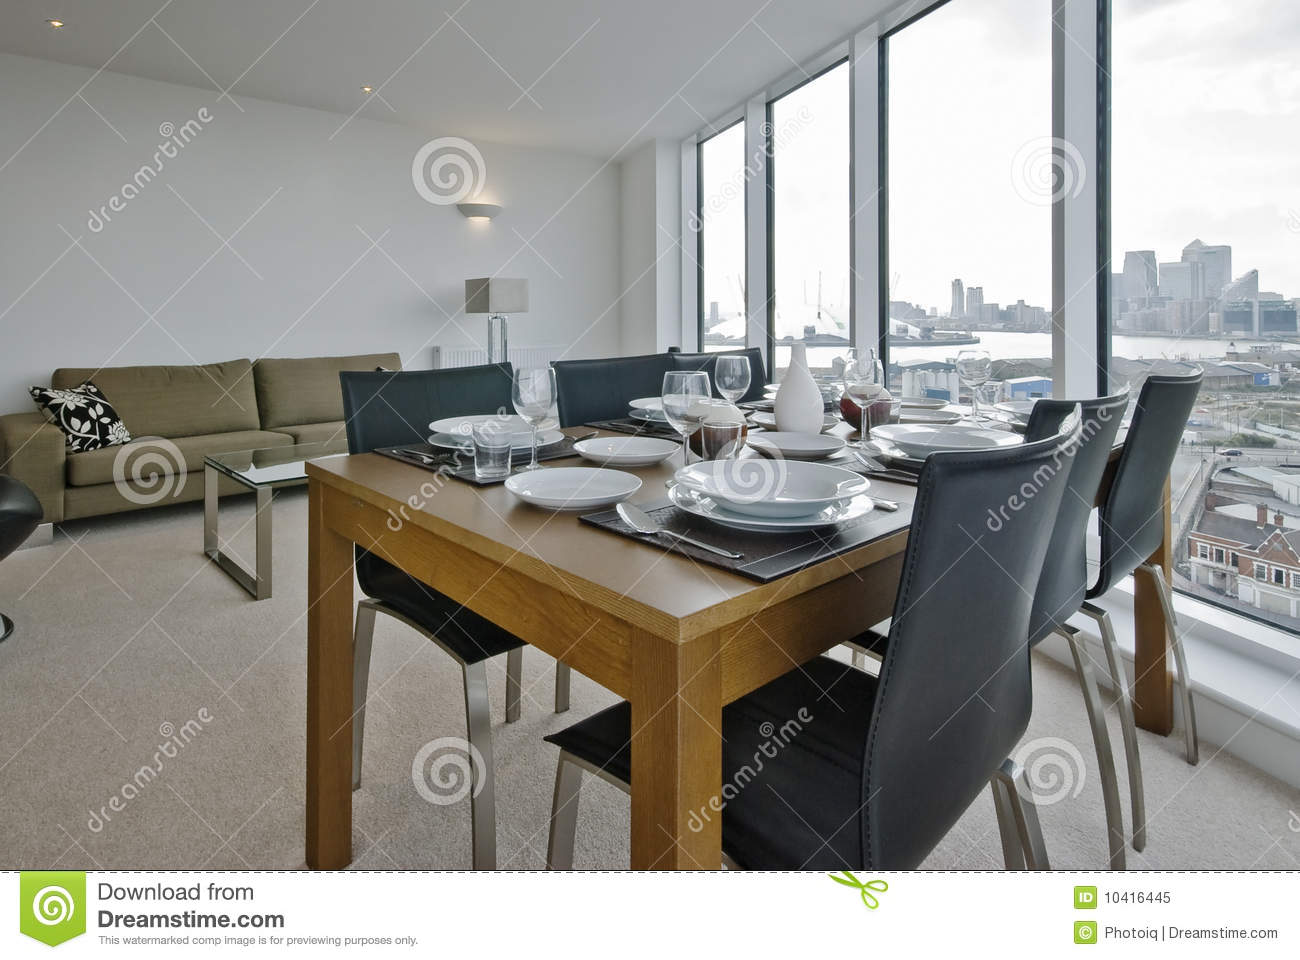 Living room with dining table set up royalty free stock for Dining table in living room pictures